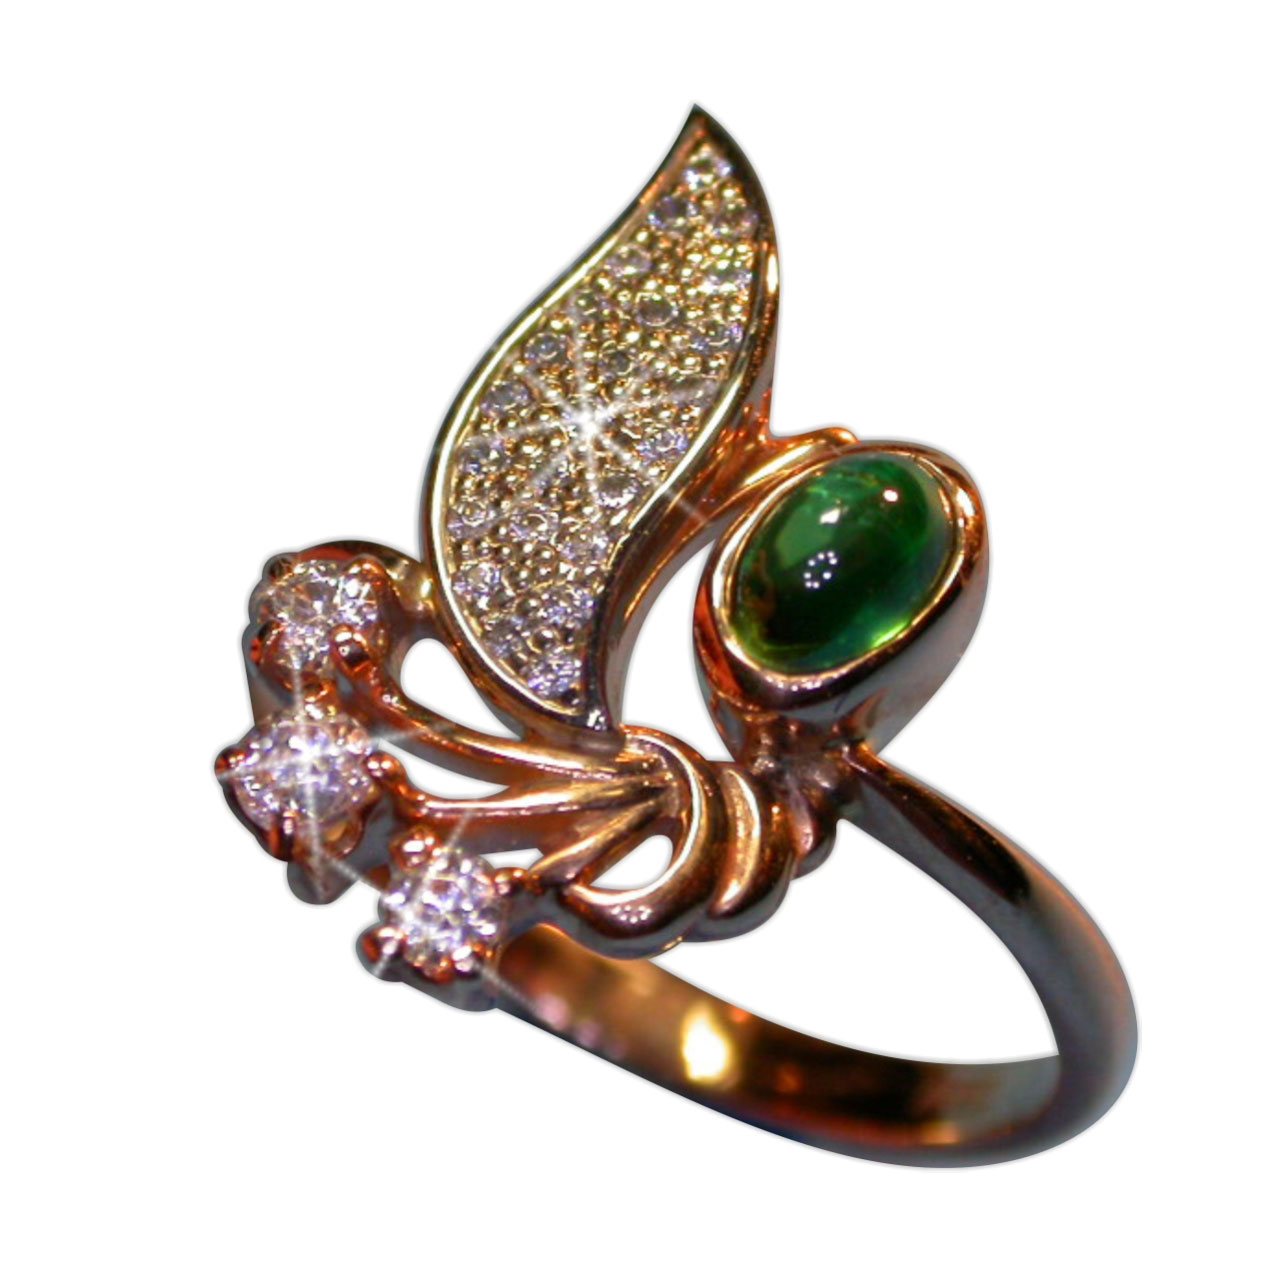 Russian gold Faberge style ring with emeralds 2